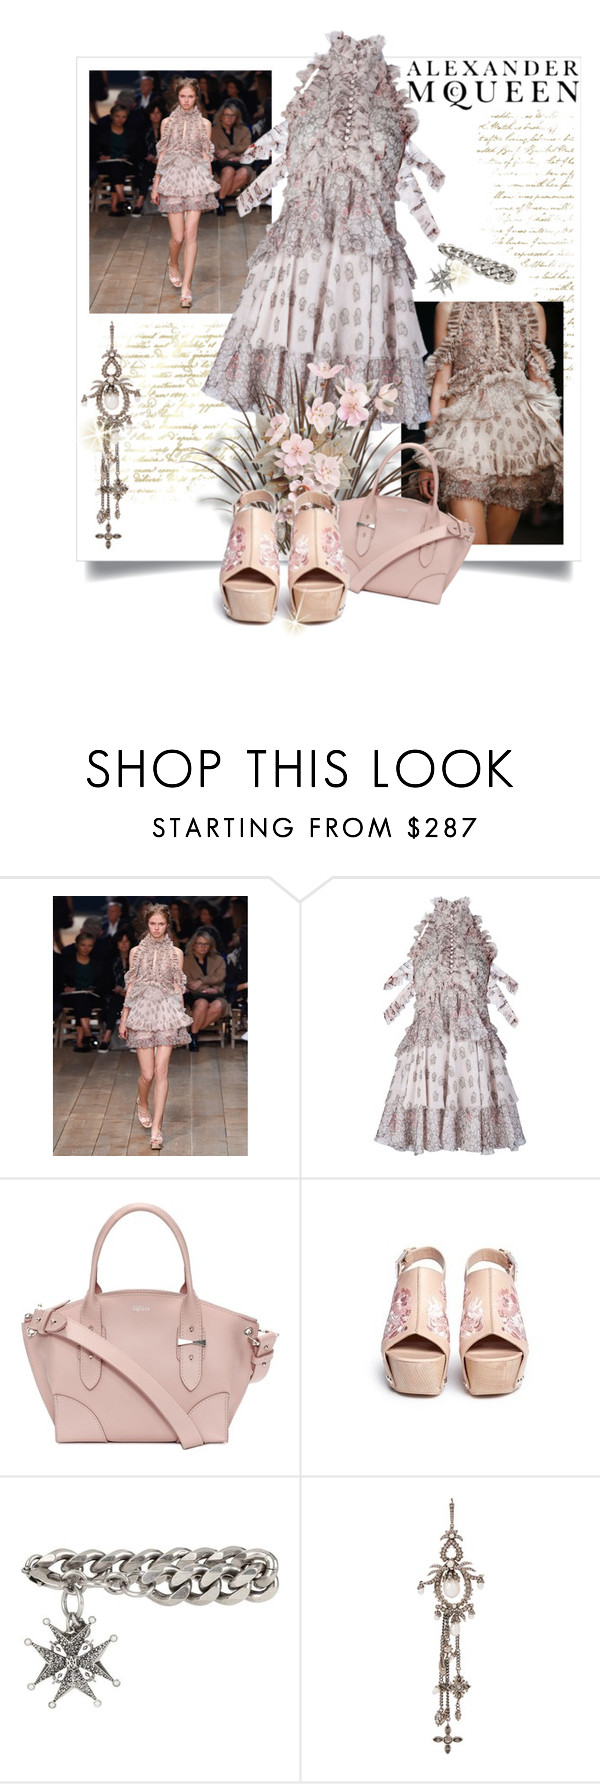 """""""The Real McQueen"""" by poshtrish ❤ liked on Polyvore featuring Alexander McQueen and AlexanderMcQueen"""